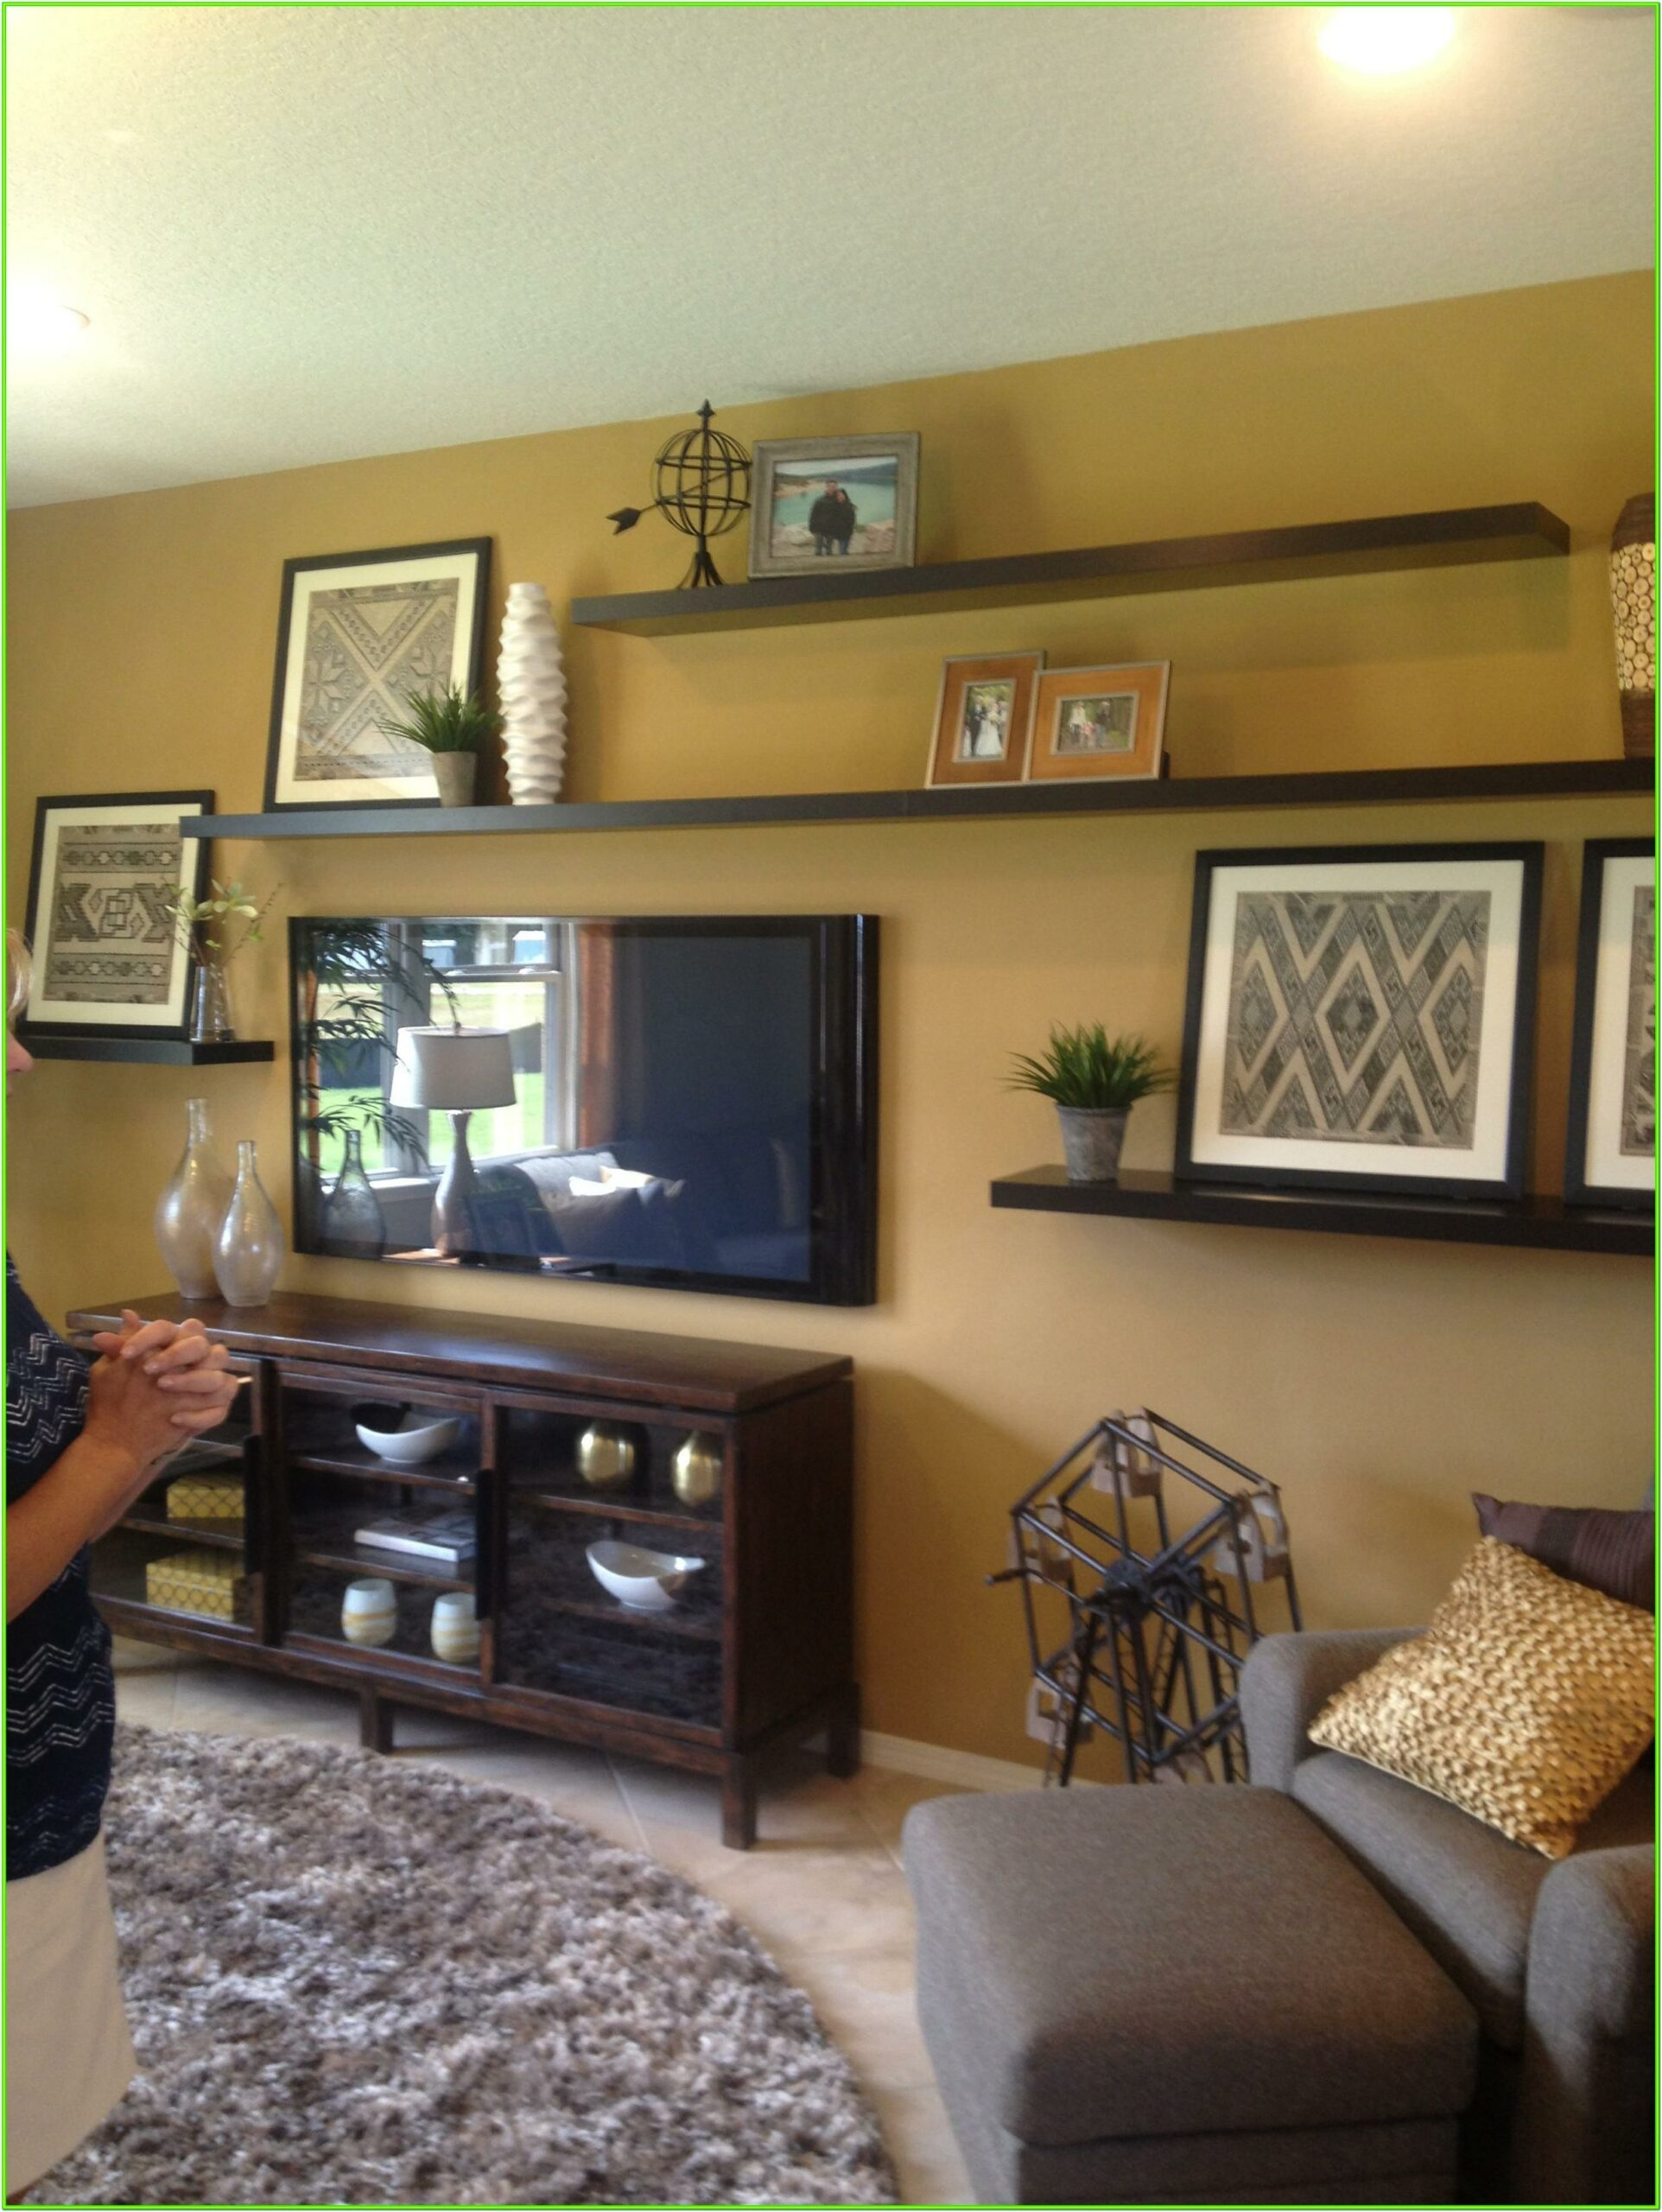 8 Ft Floating Shelves Ideas Living Room